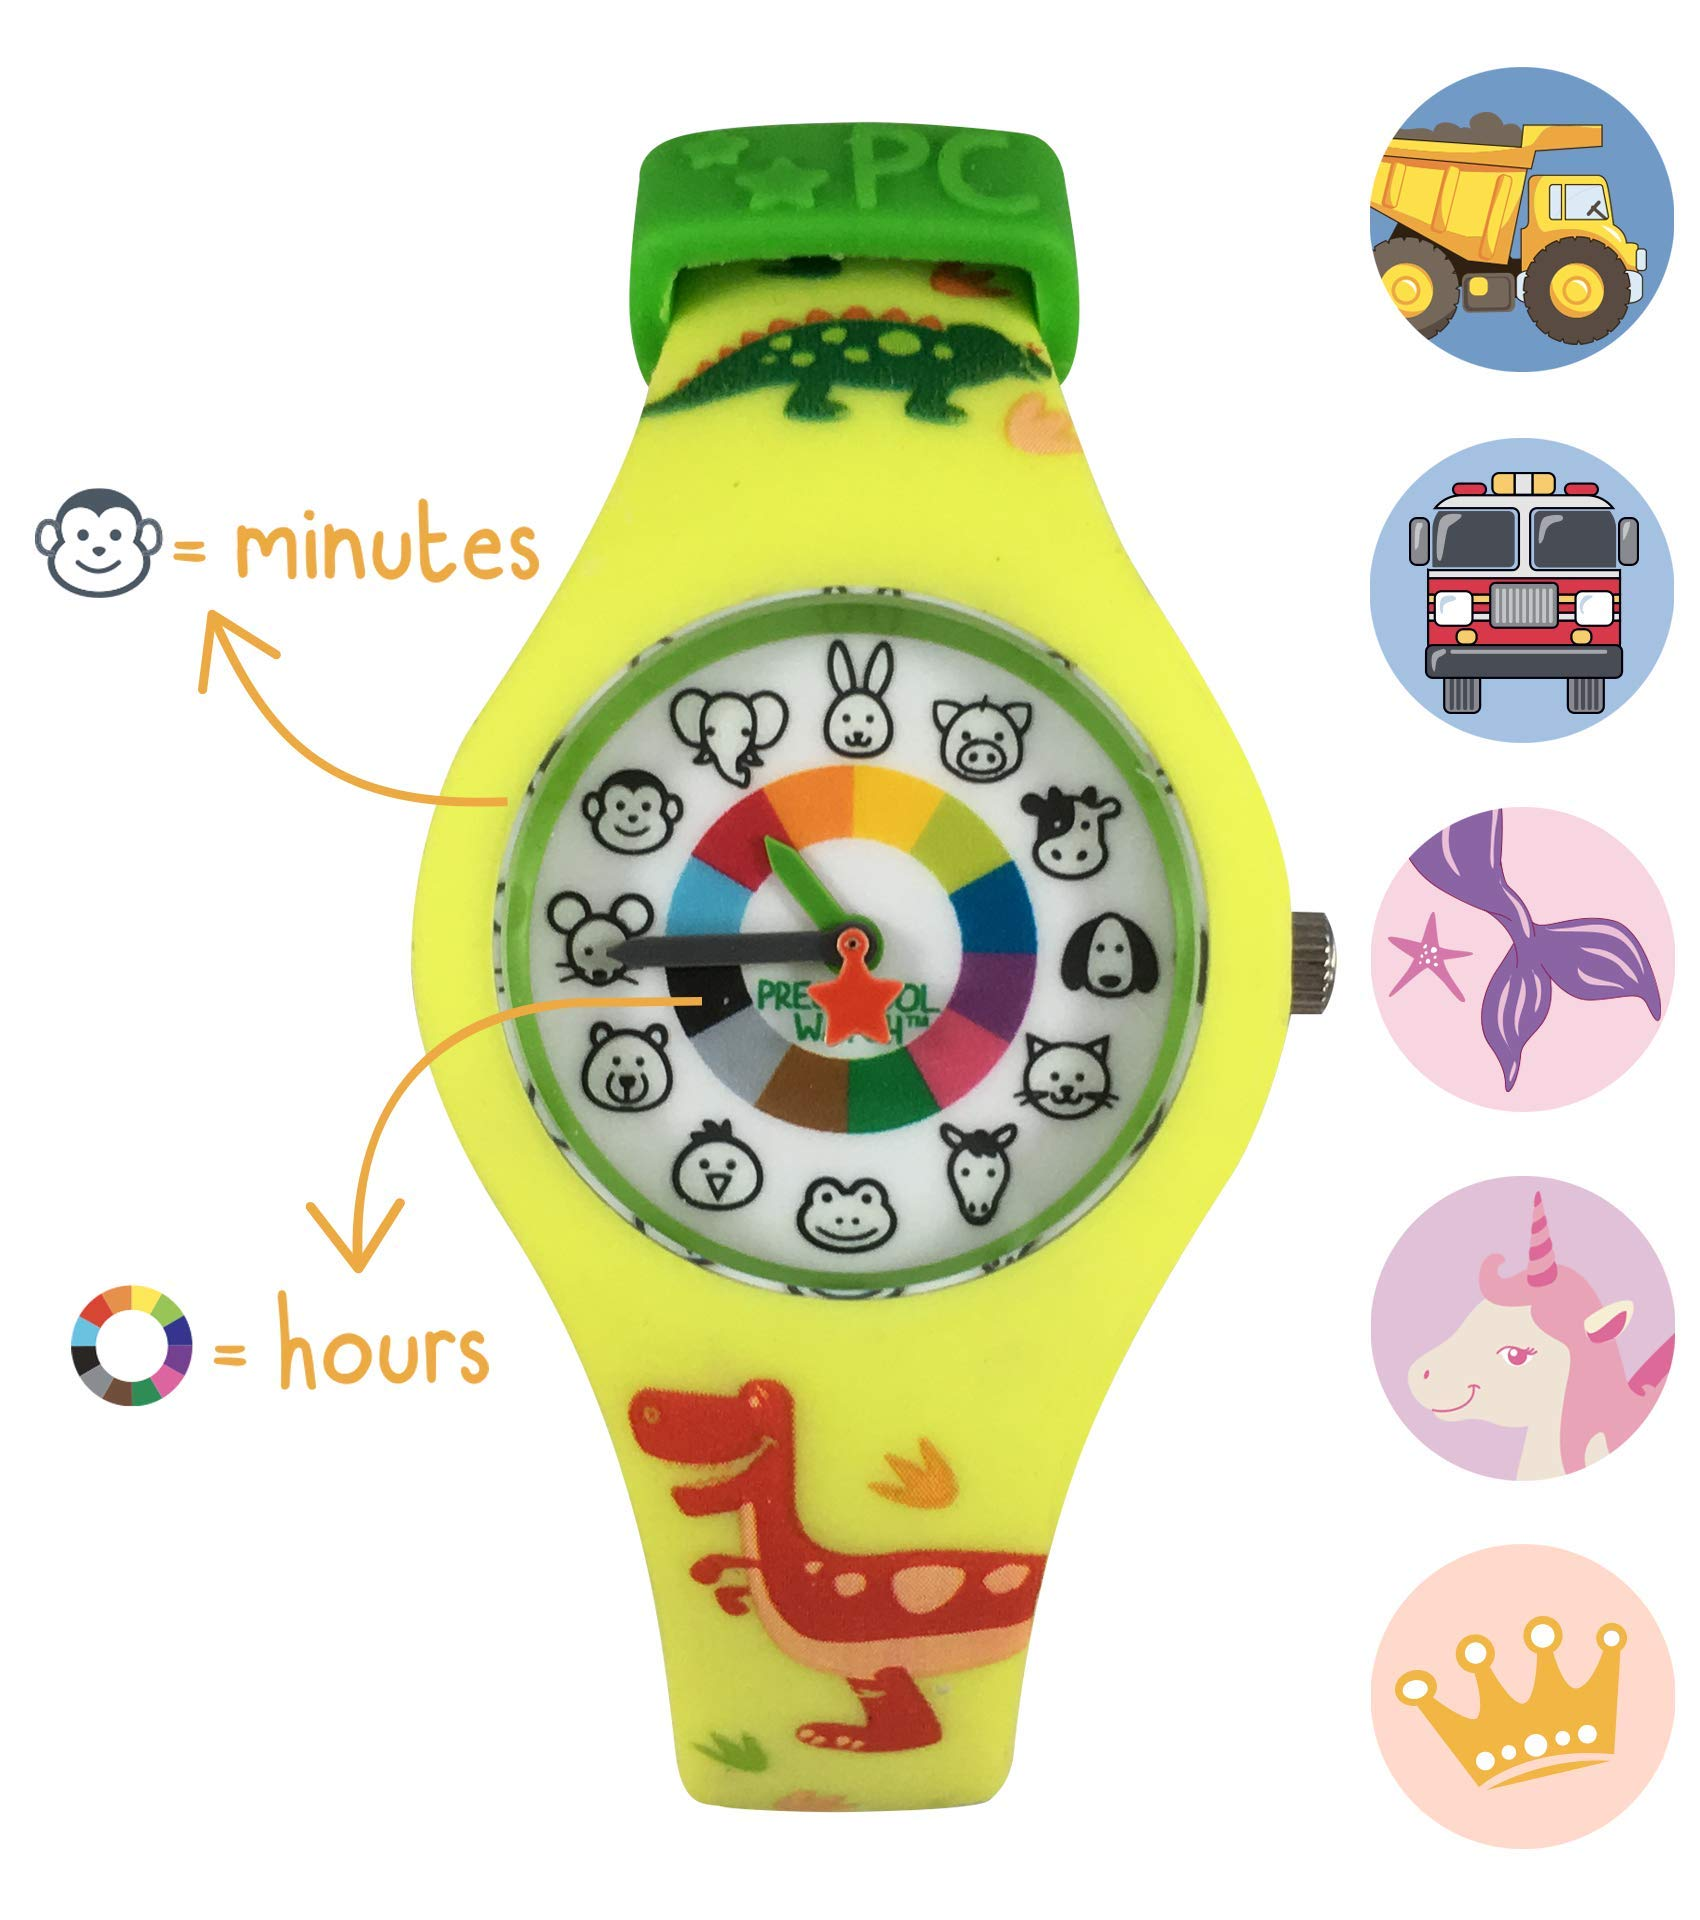 Dinosaur Preschool Watch - The Only Analog Kids Watch Preschoolers Understand! Quality Teaching time Silicone Watch with Glow-in-The-Dark Dial & Japan Movement by PRESCHOOL COLLECTION (Image #7)